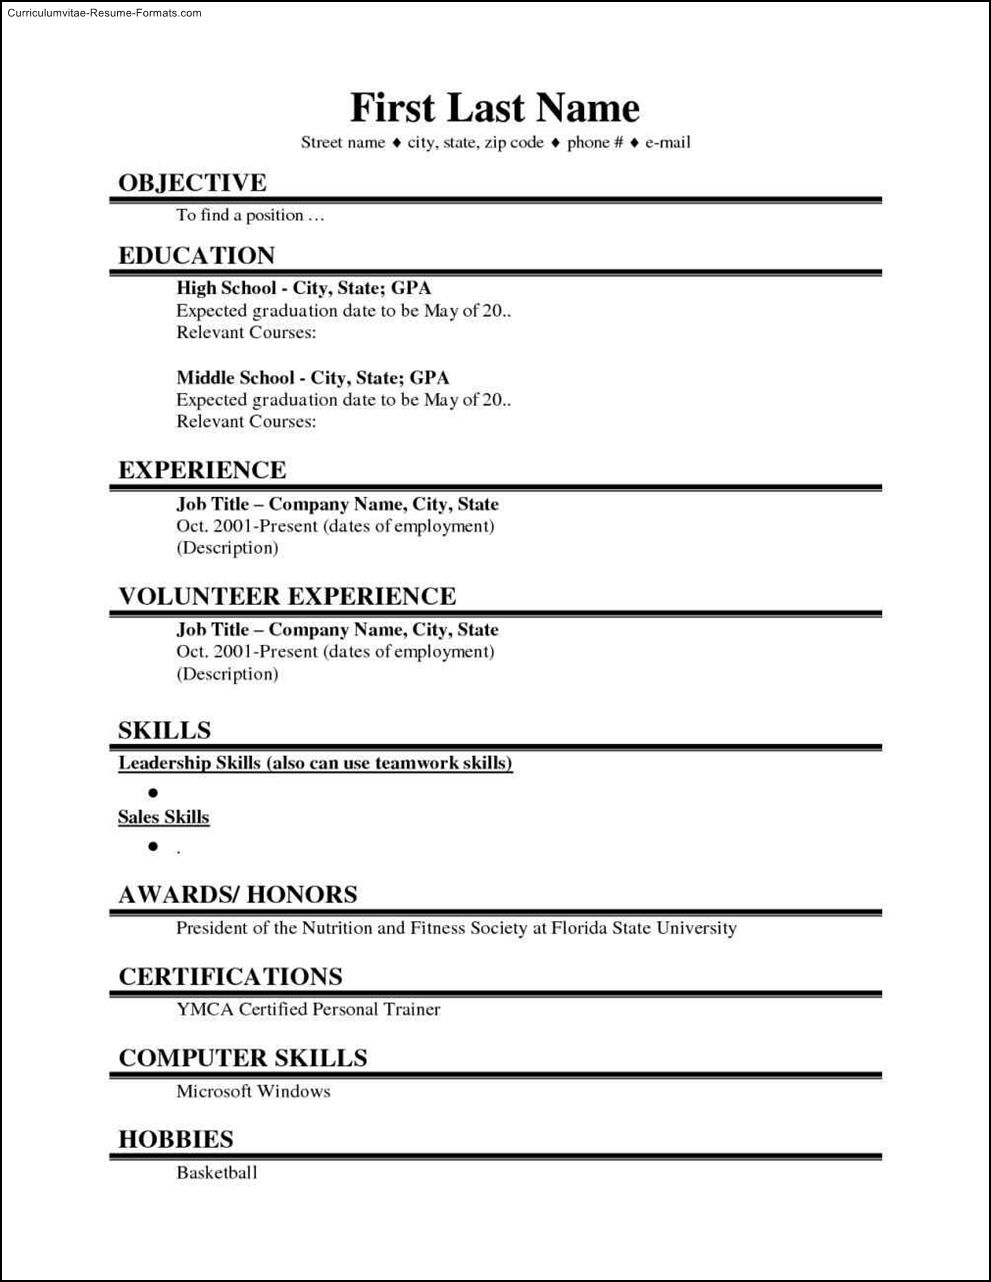 Resume Examples Me Student Resume Student Resume Template First Job Resume